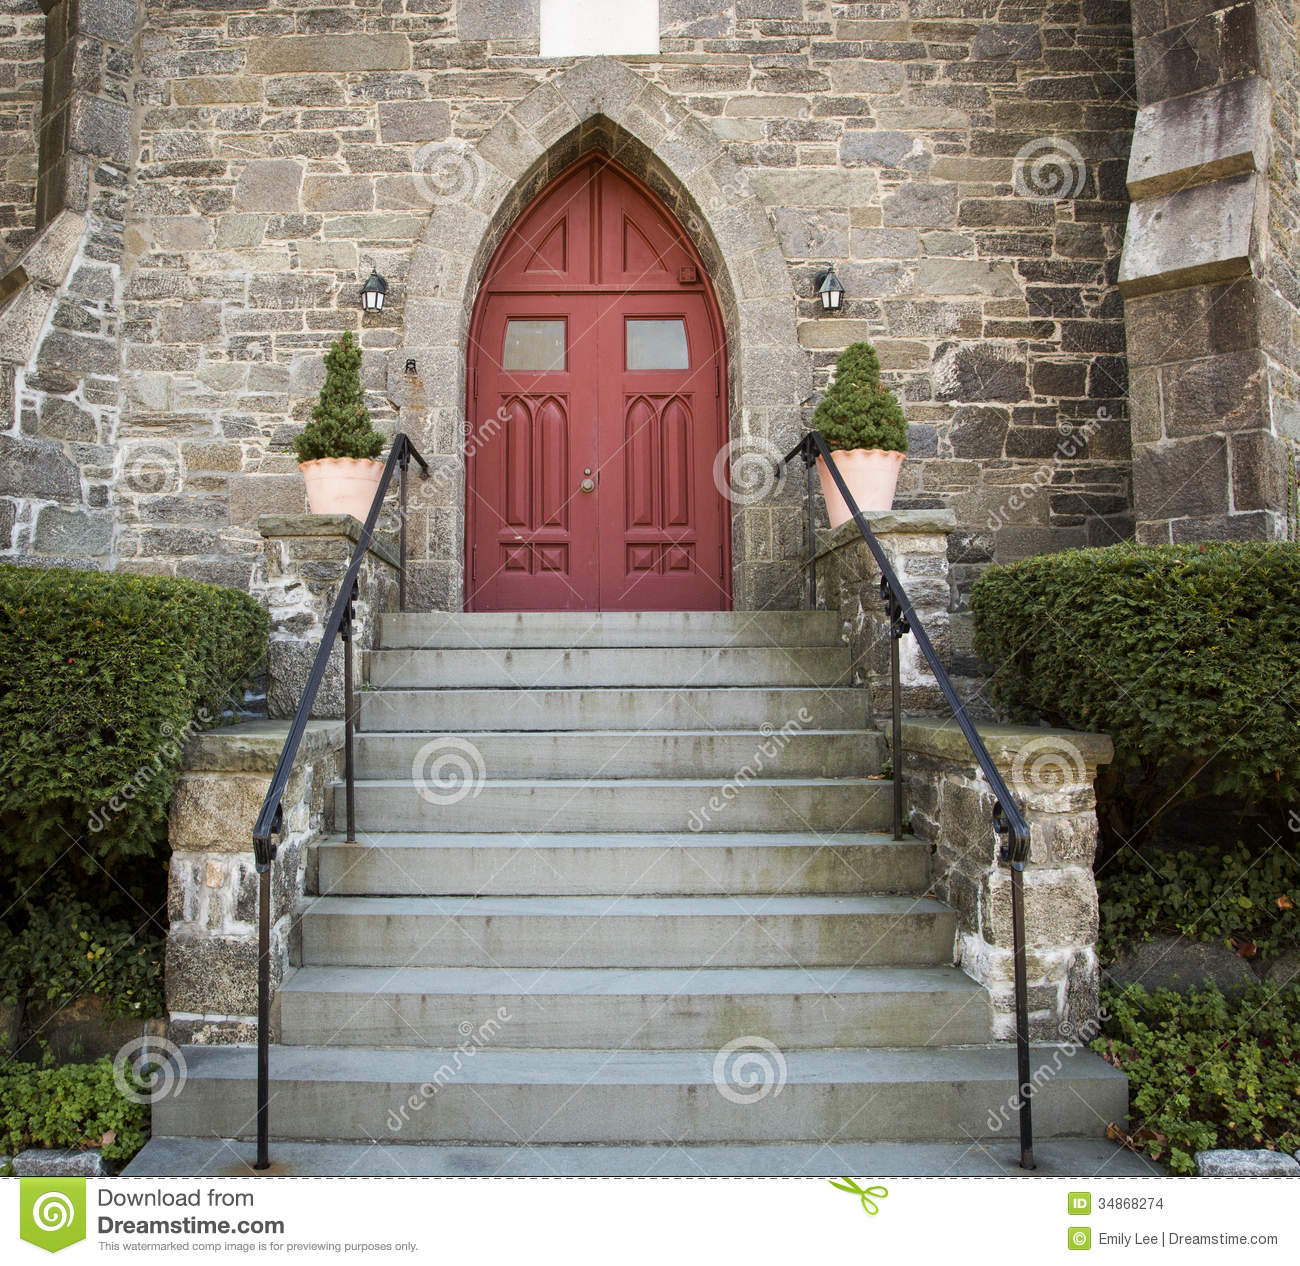 stone-church-red-door-steps-lead-up-to-old-greenwich-ct-34868274.jpg